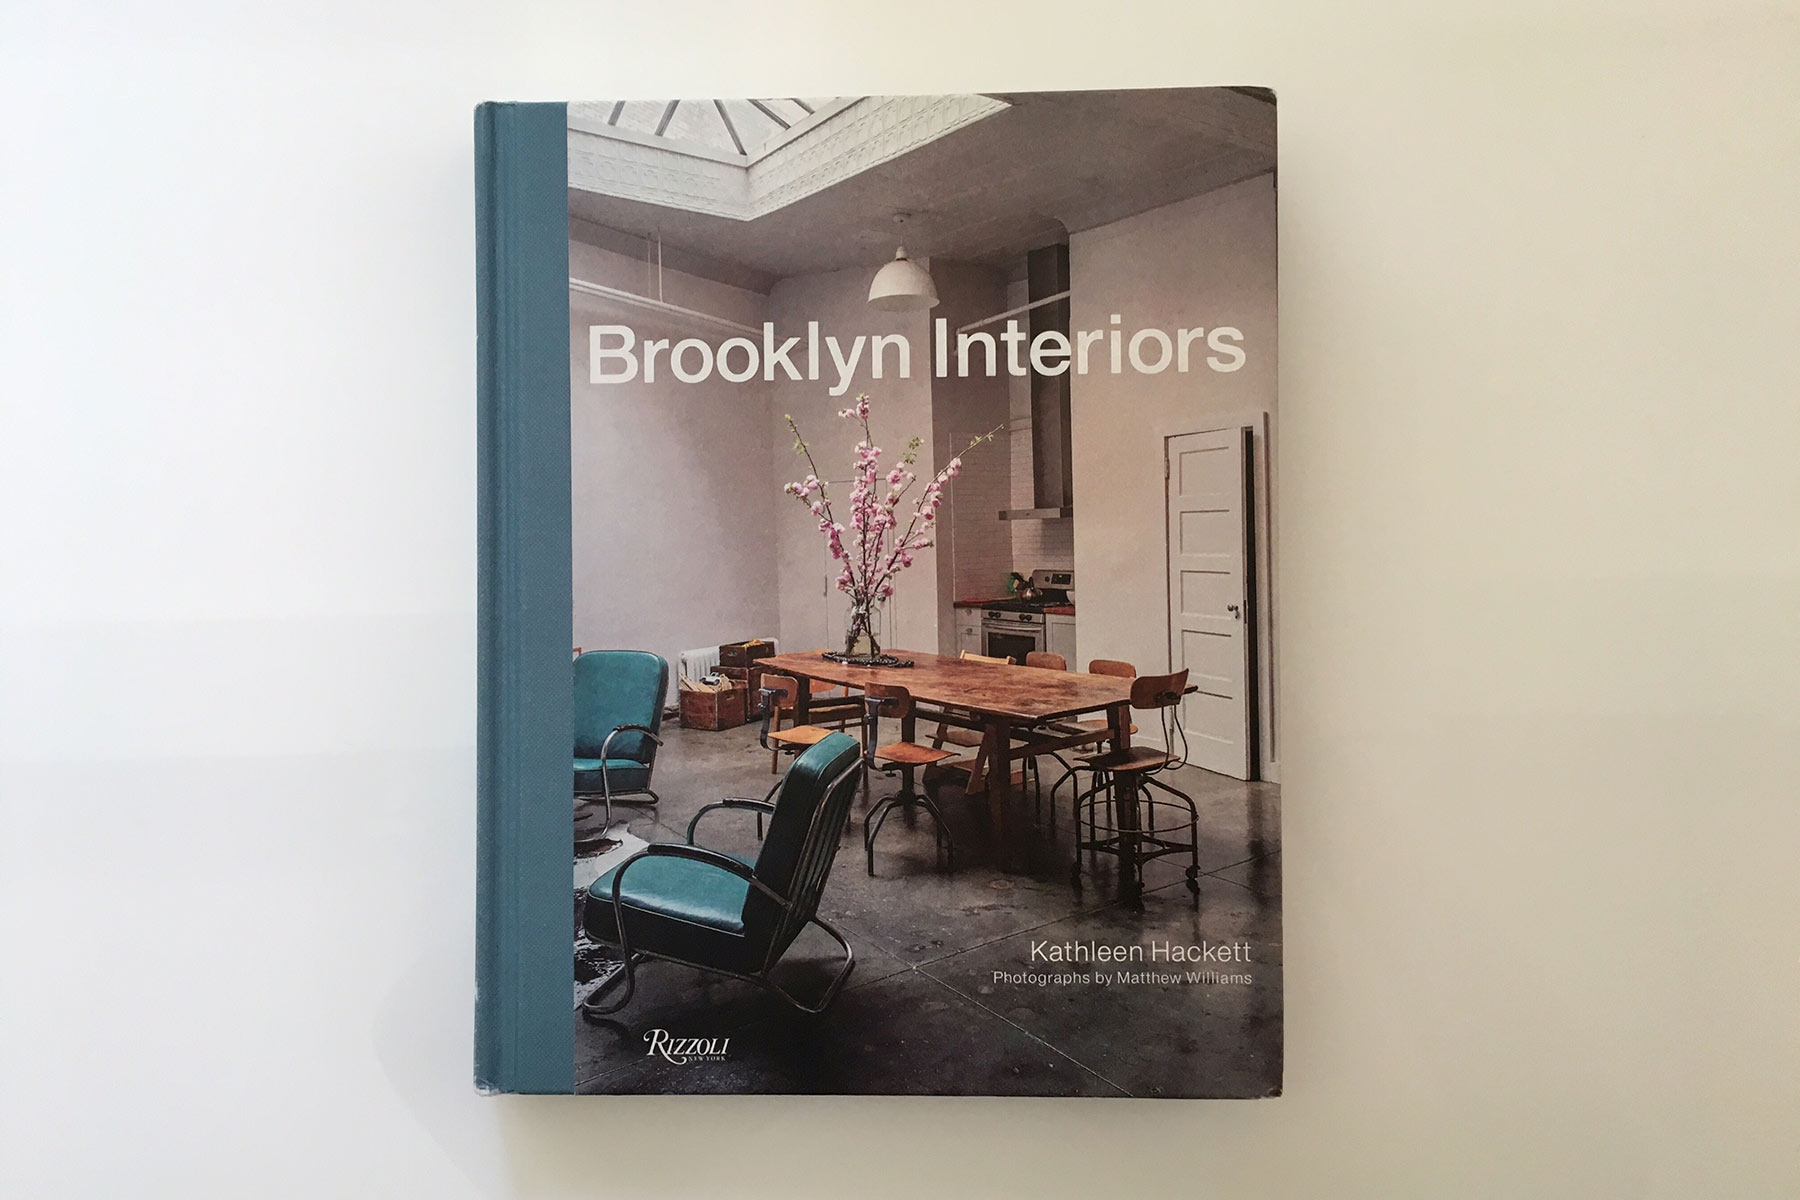 HR_BrooklynInteriors_Cover2